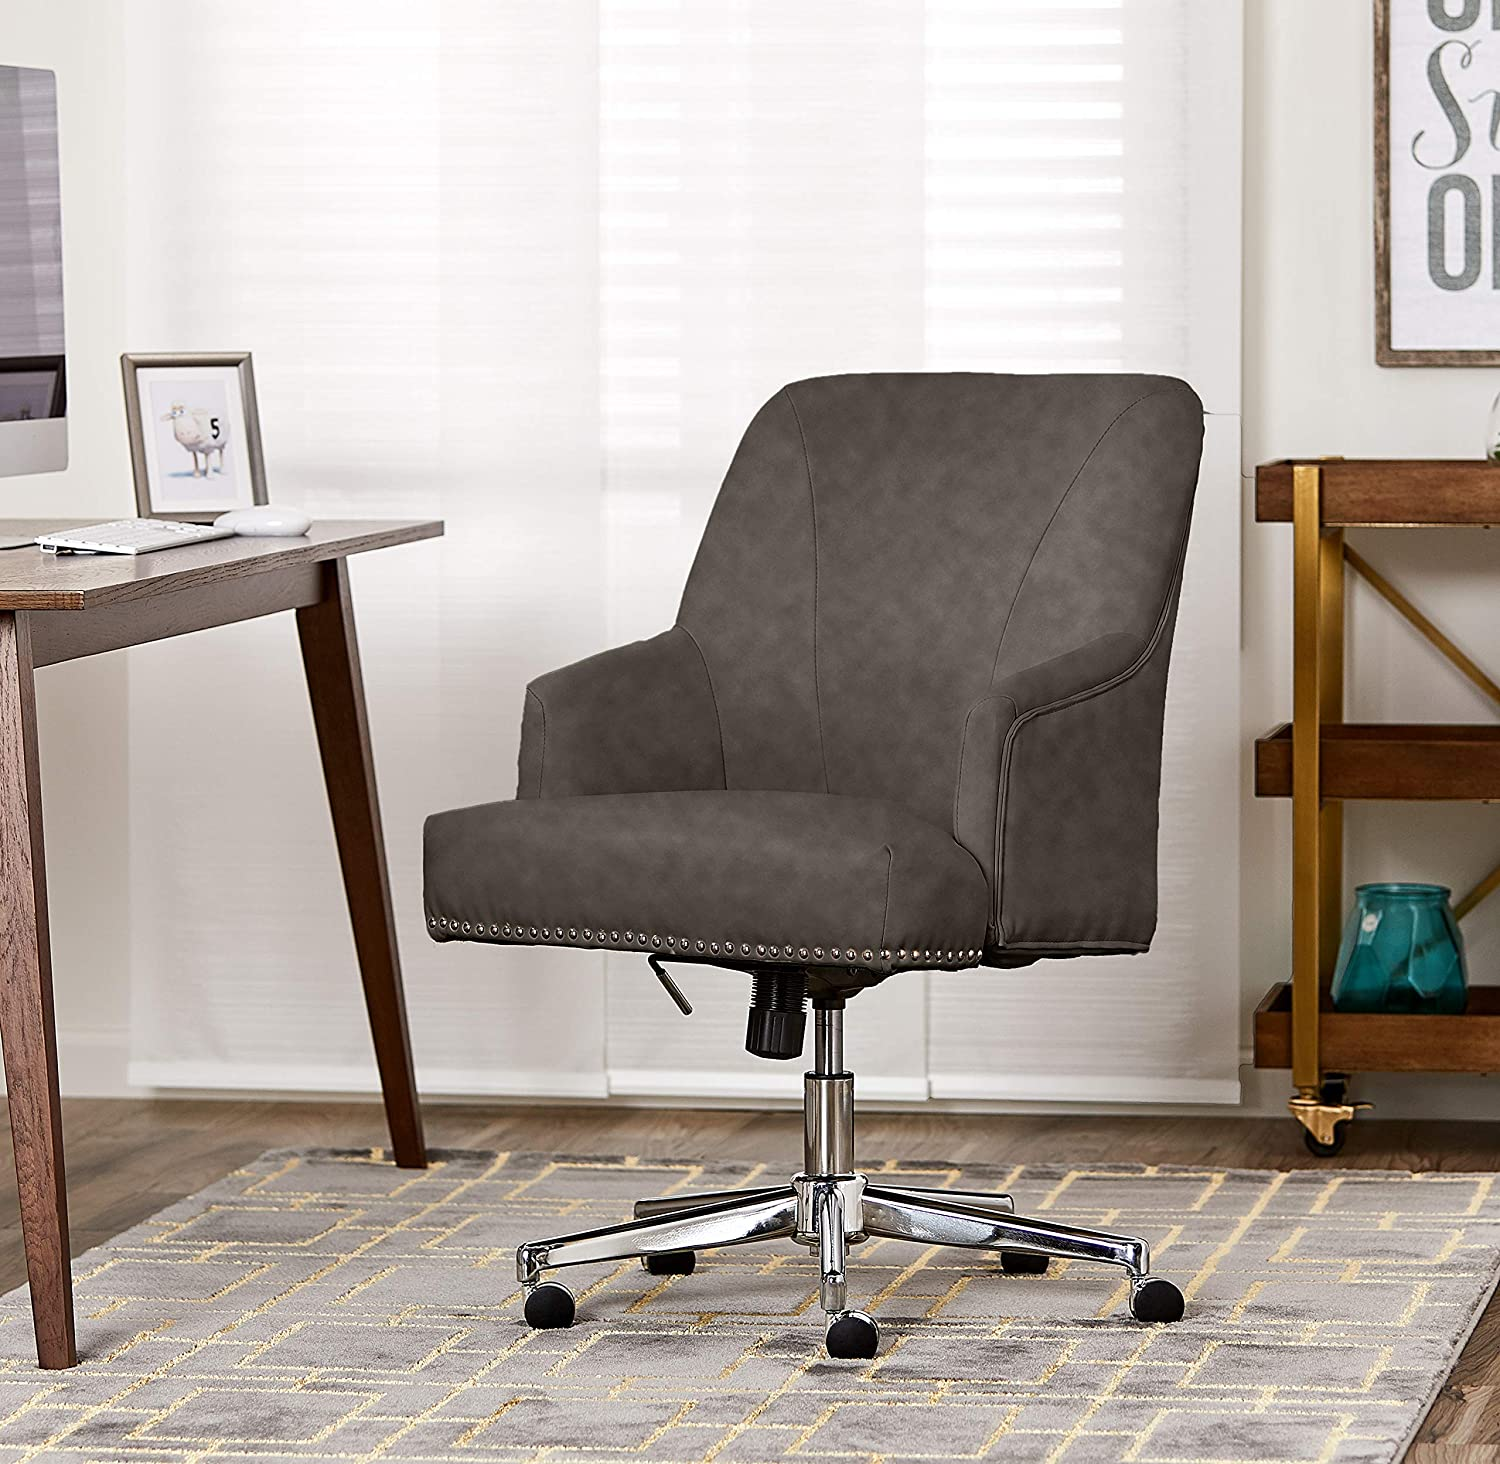 Serta Style Leighton Home Office Chair, Bonded Leather, Gray